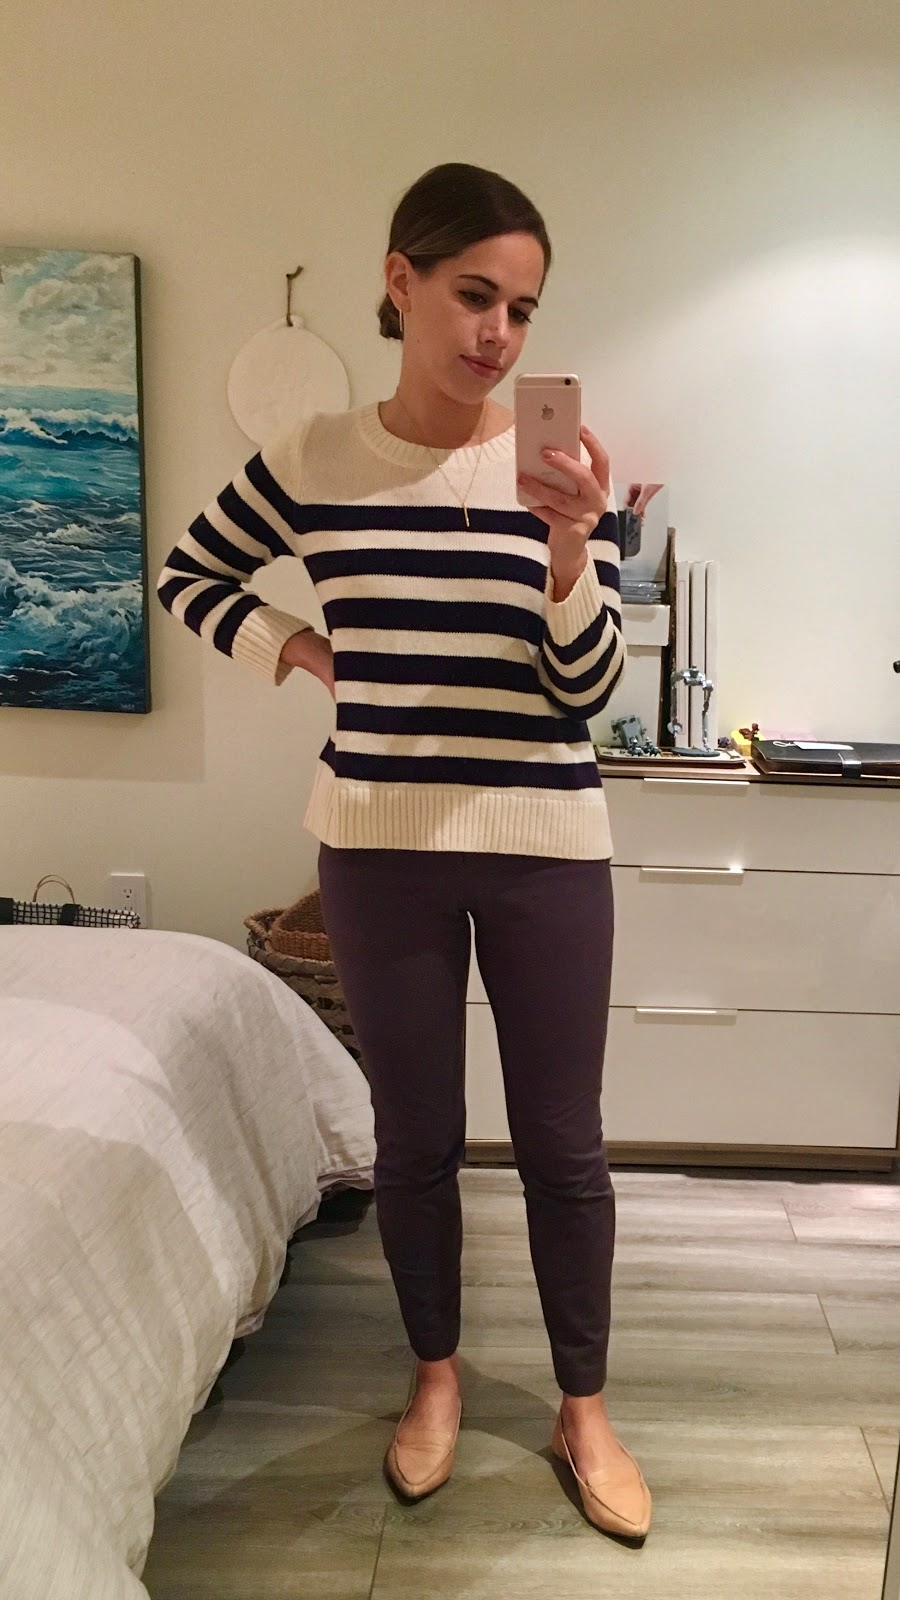 Jules in Flats - Striped Sweater with Grey Ankle Pants and Nude Flats (Business Casual Fall Workwear on a Budget)